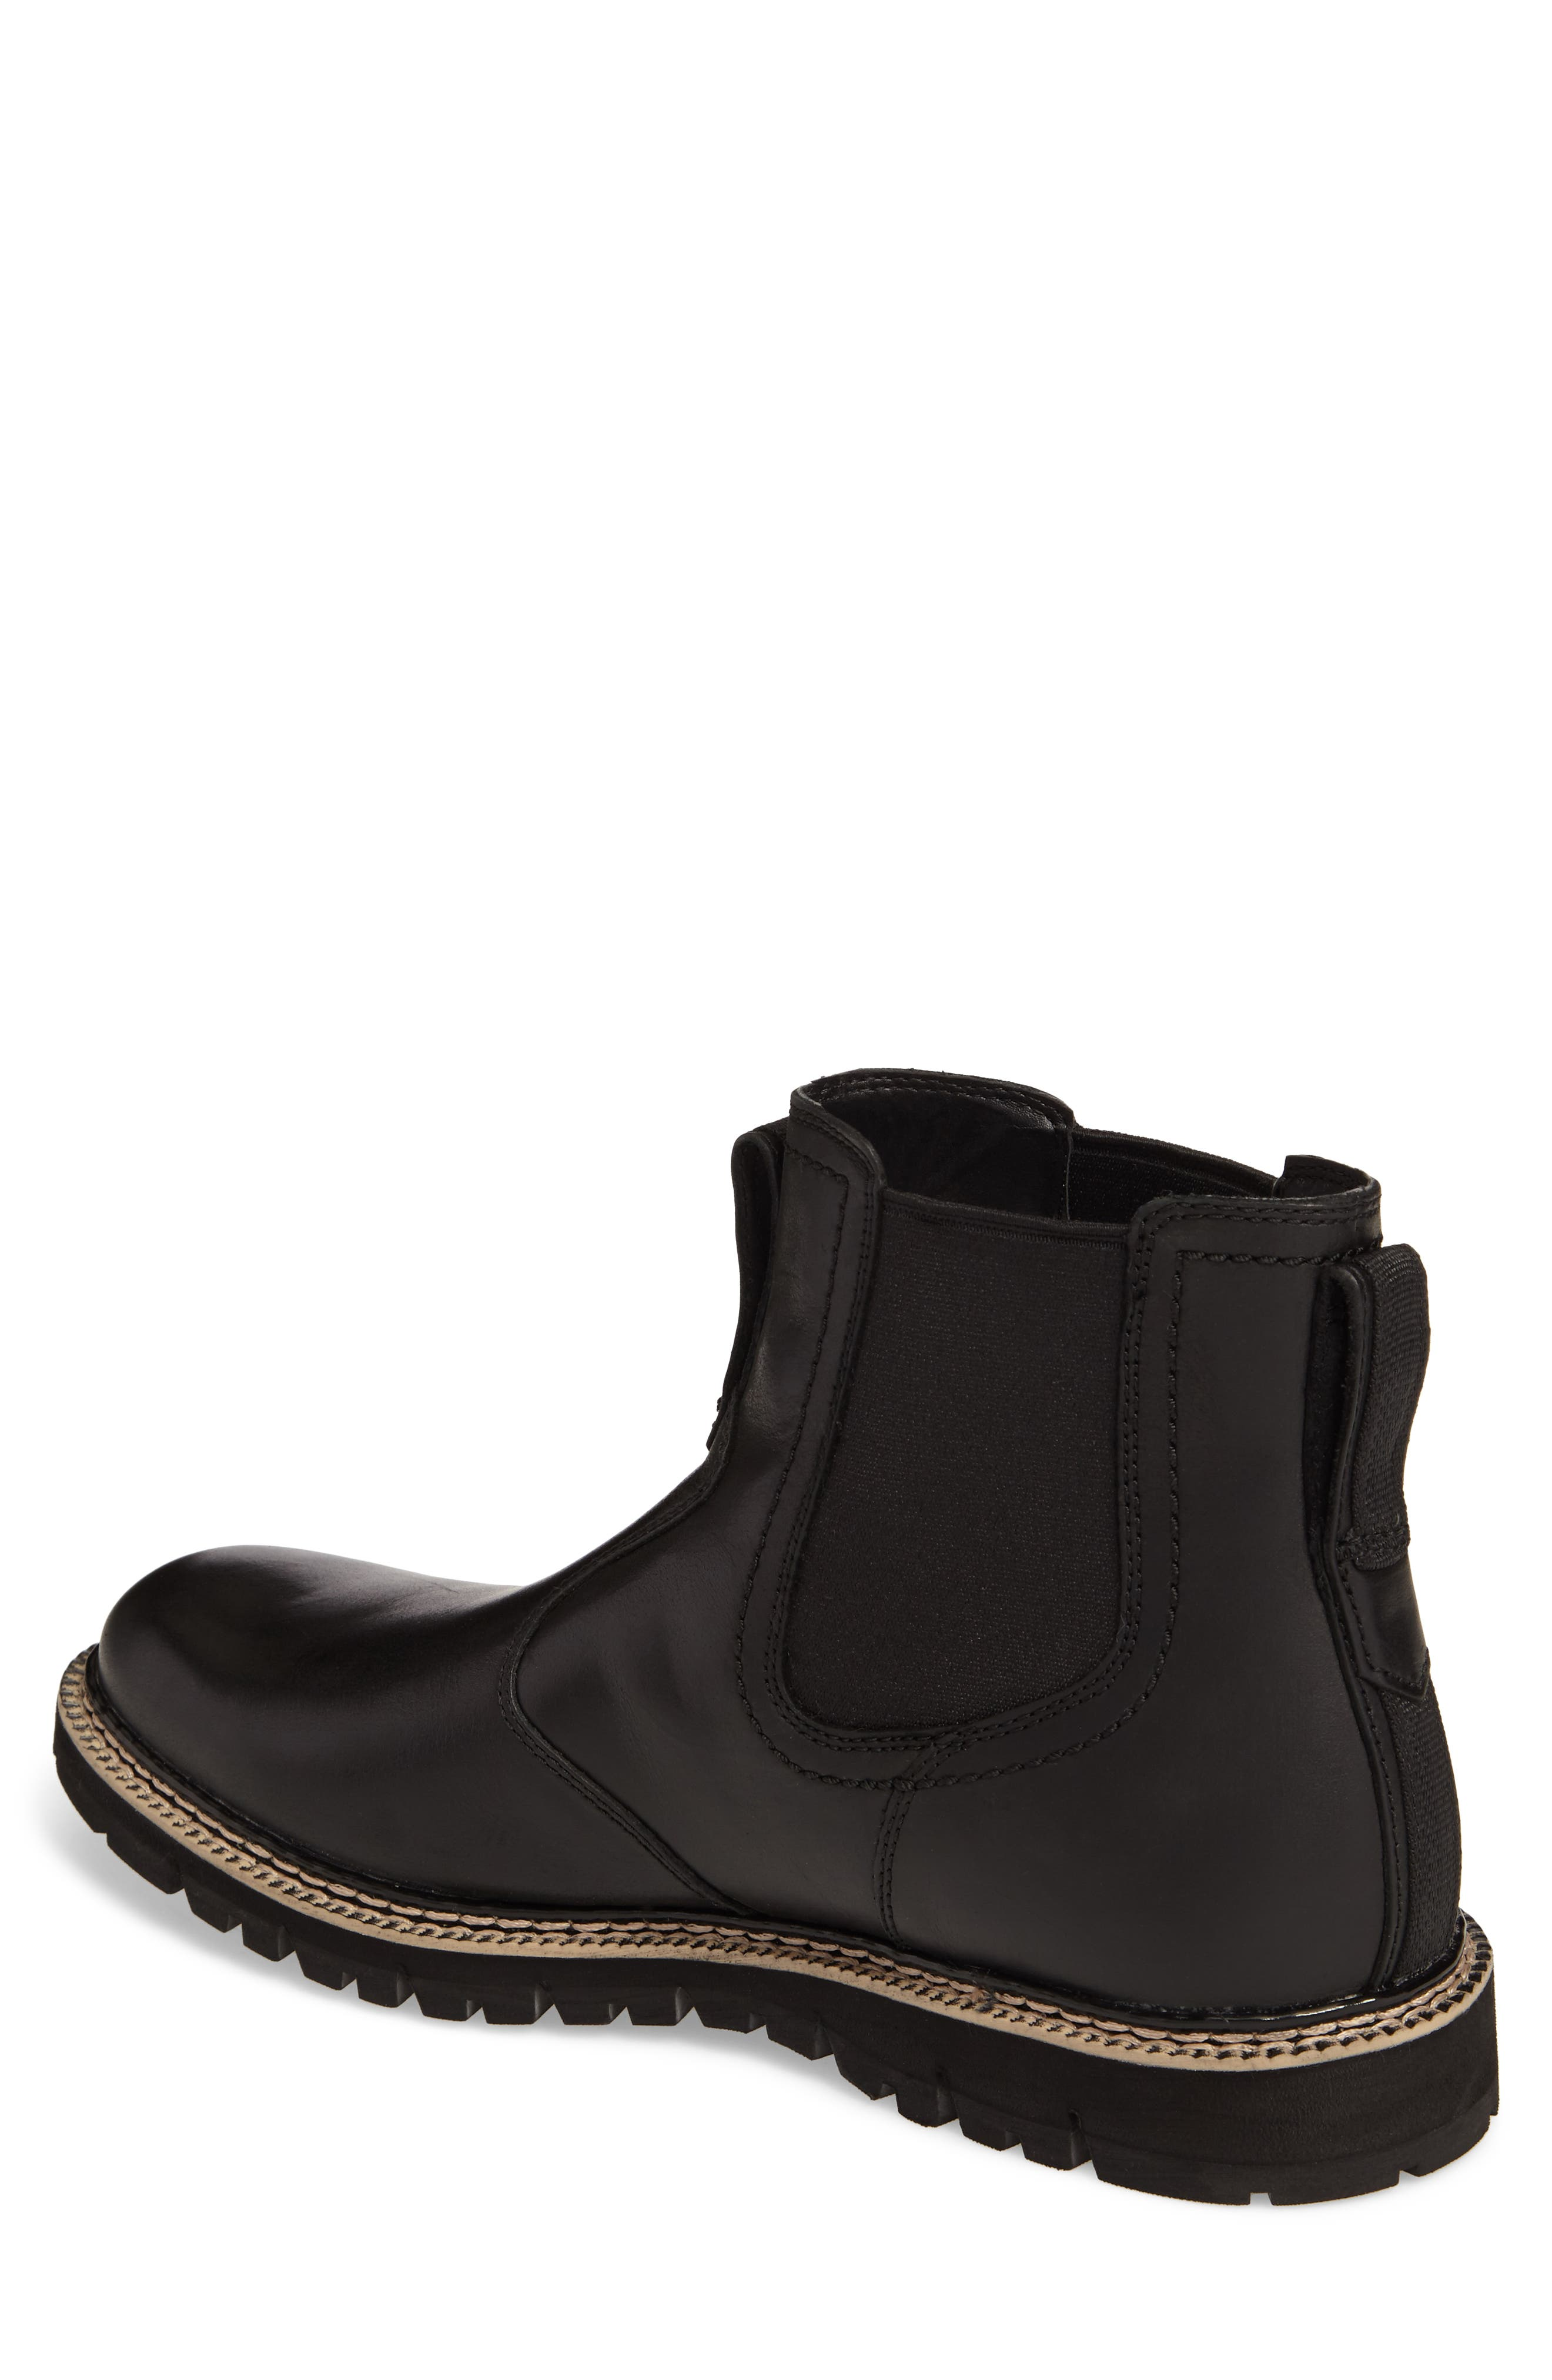 Alternate Image 2  - Timberland Britton Hill Chelsea Boot (Men)